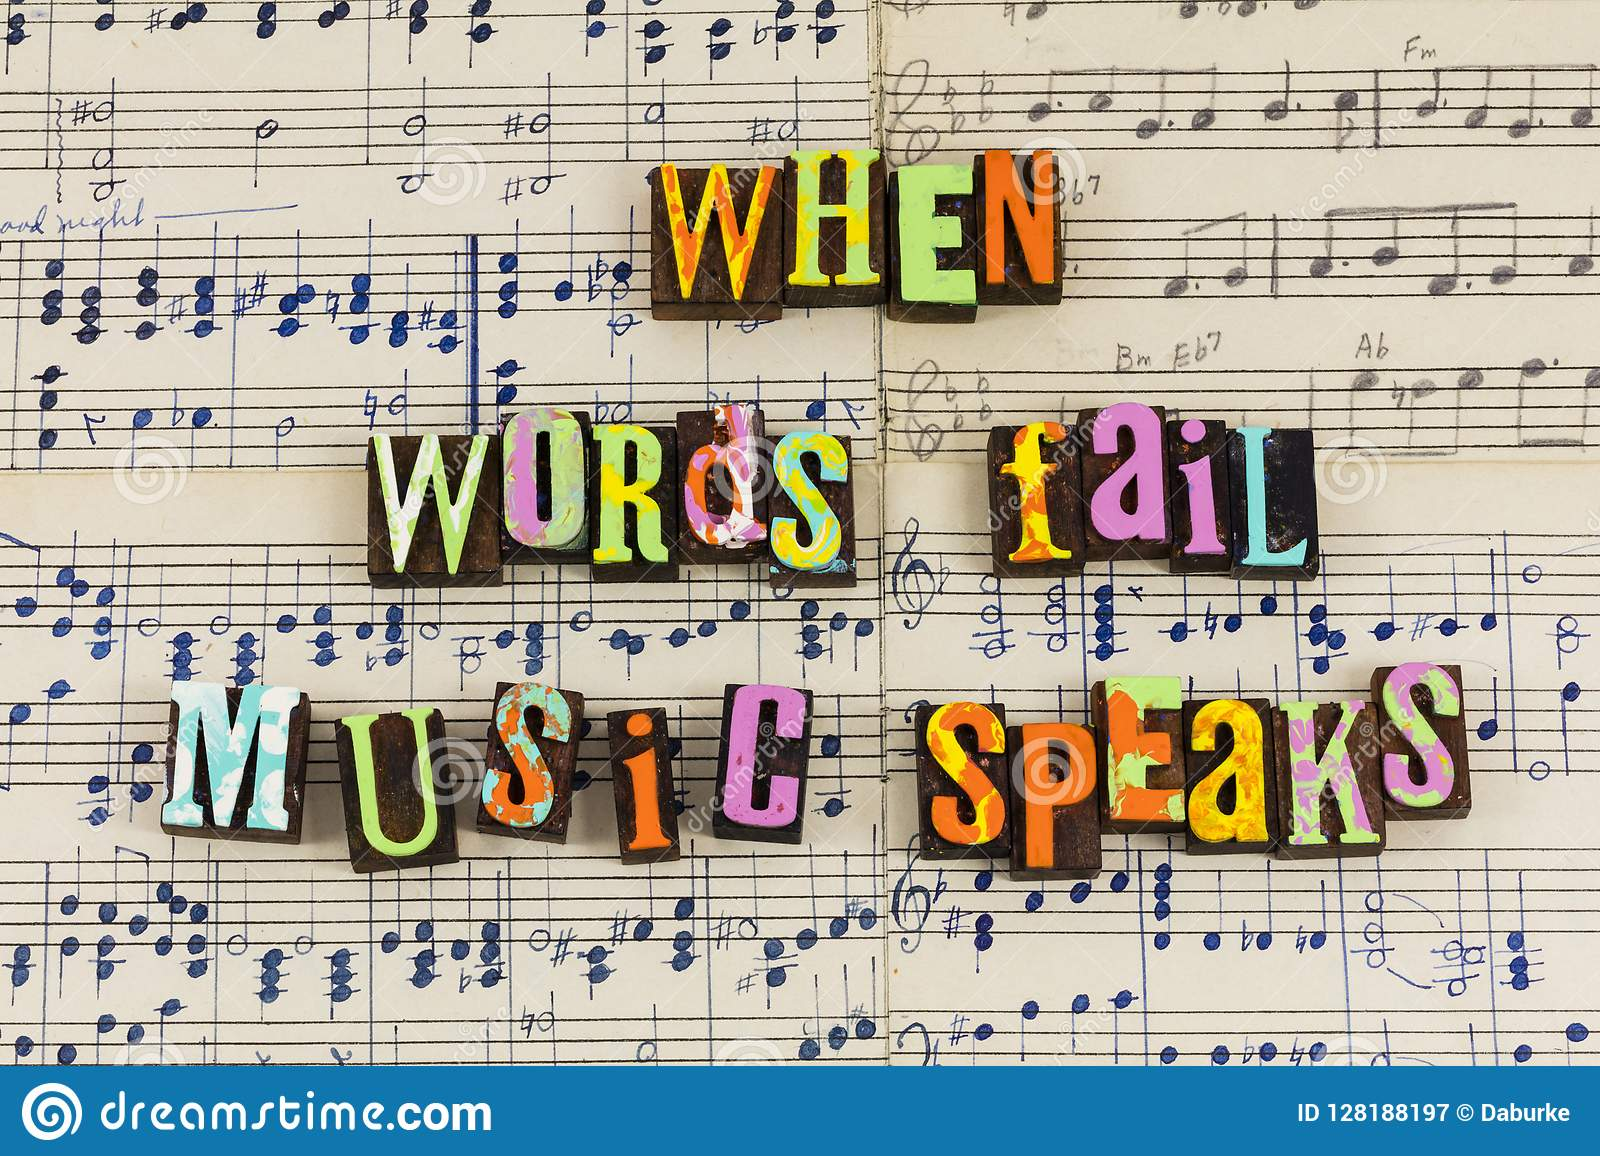 Hand Drawn Music Paper Quote Letterpress Musical Speaks Speaking Communication Notes Melody Singing Love Live Enjoyment Life Background